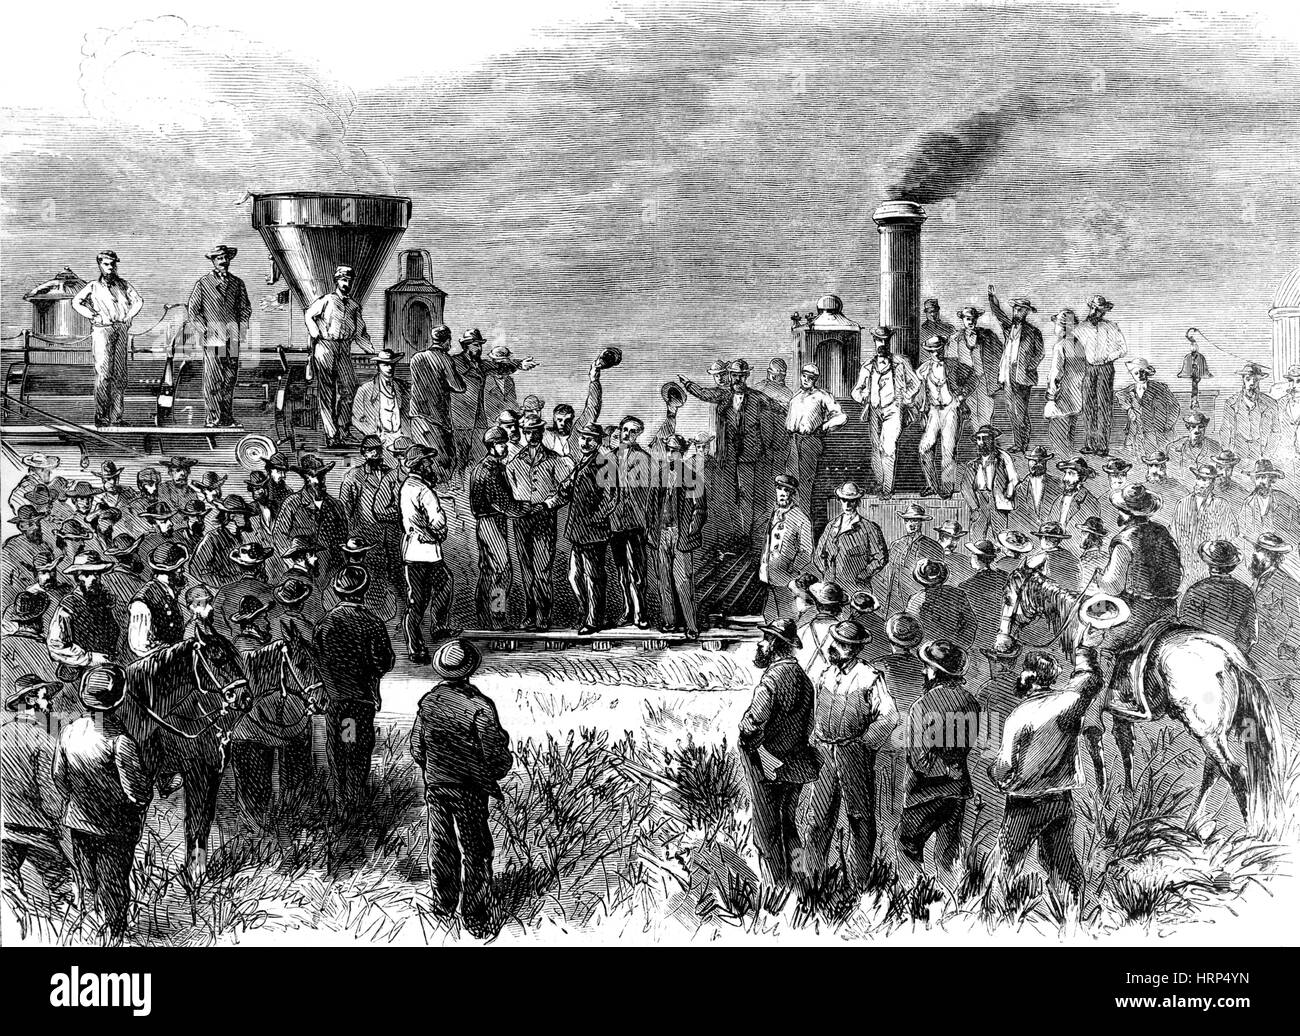 Completion of Transcontinental Railroad, 1869